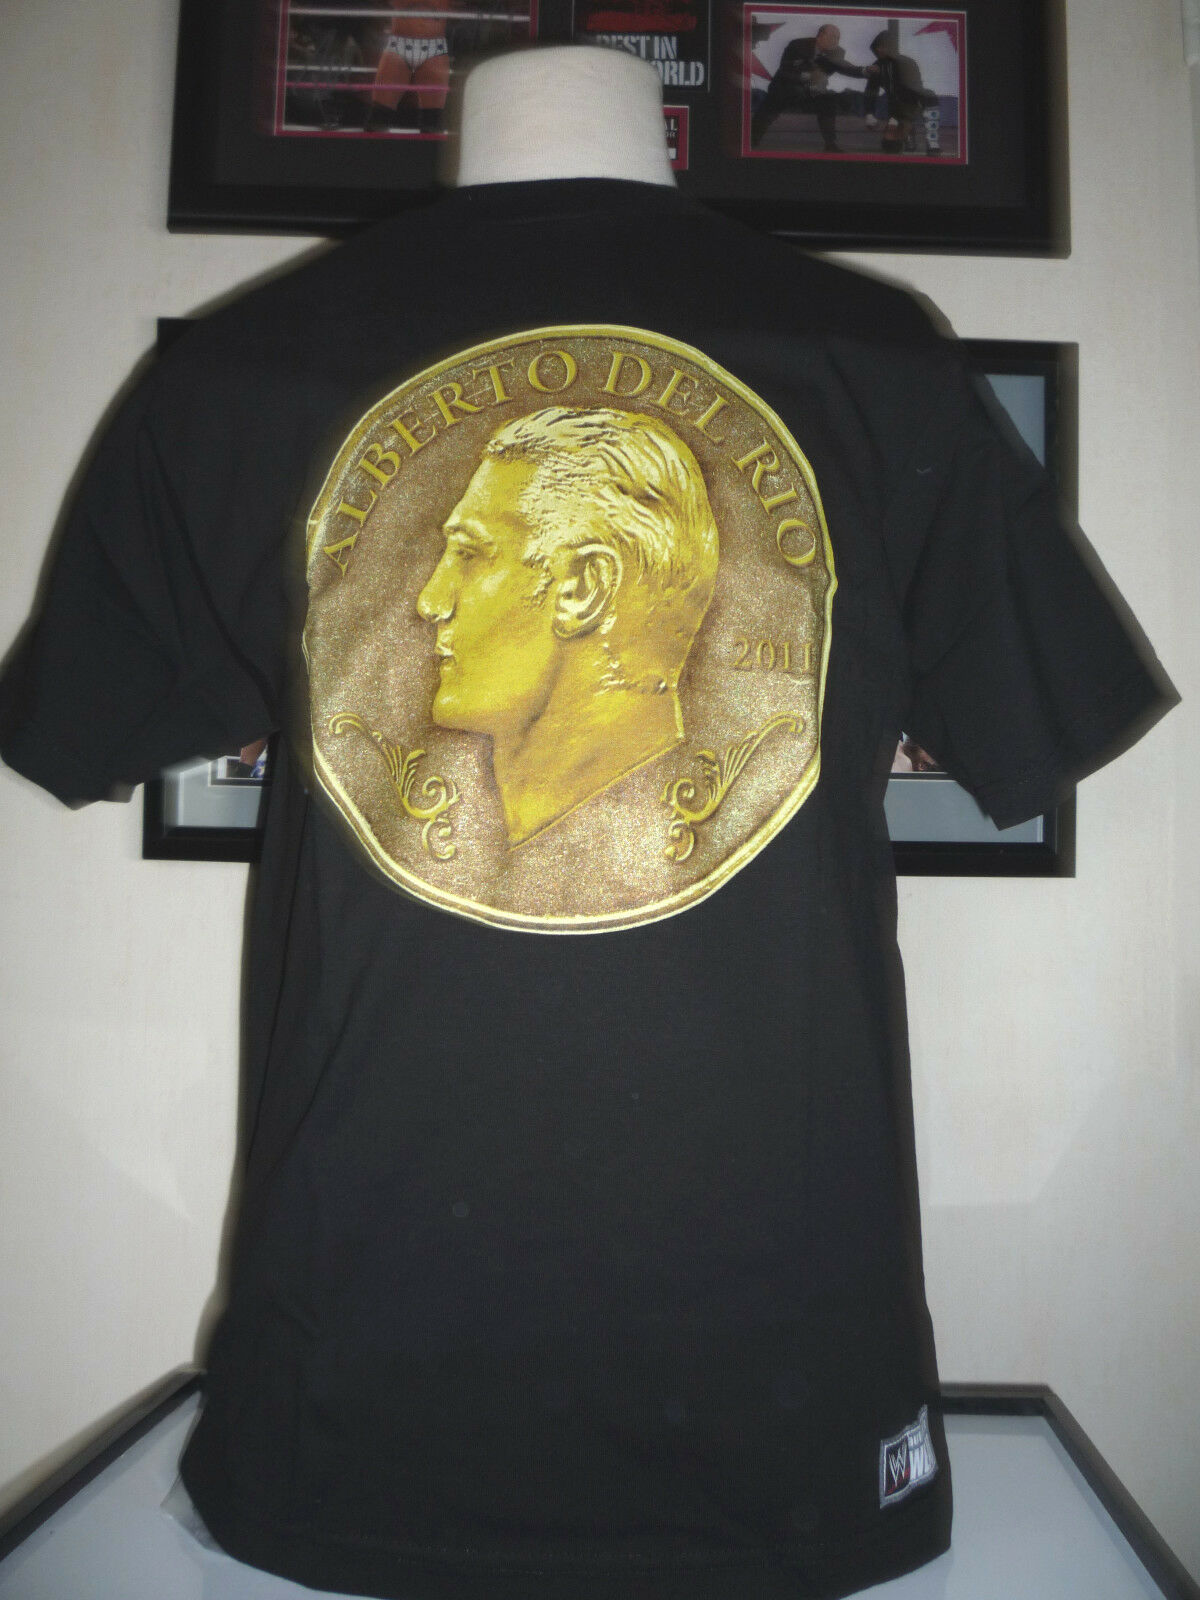 T-SHIRT CATCH WWE ALBERTO DEL RIO COIN TAILLE : S,M,L,XL,2X,3X + YOUTH M & L